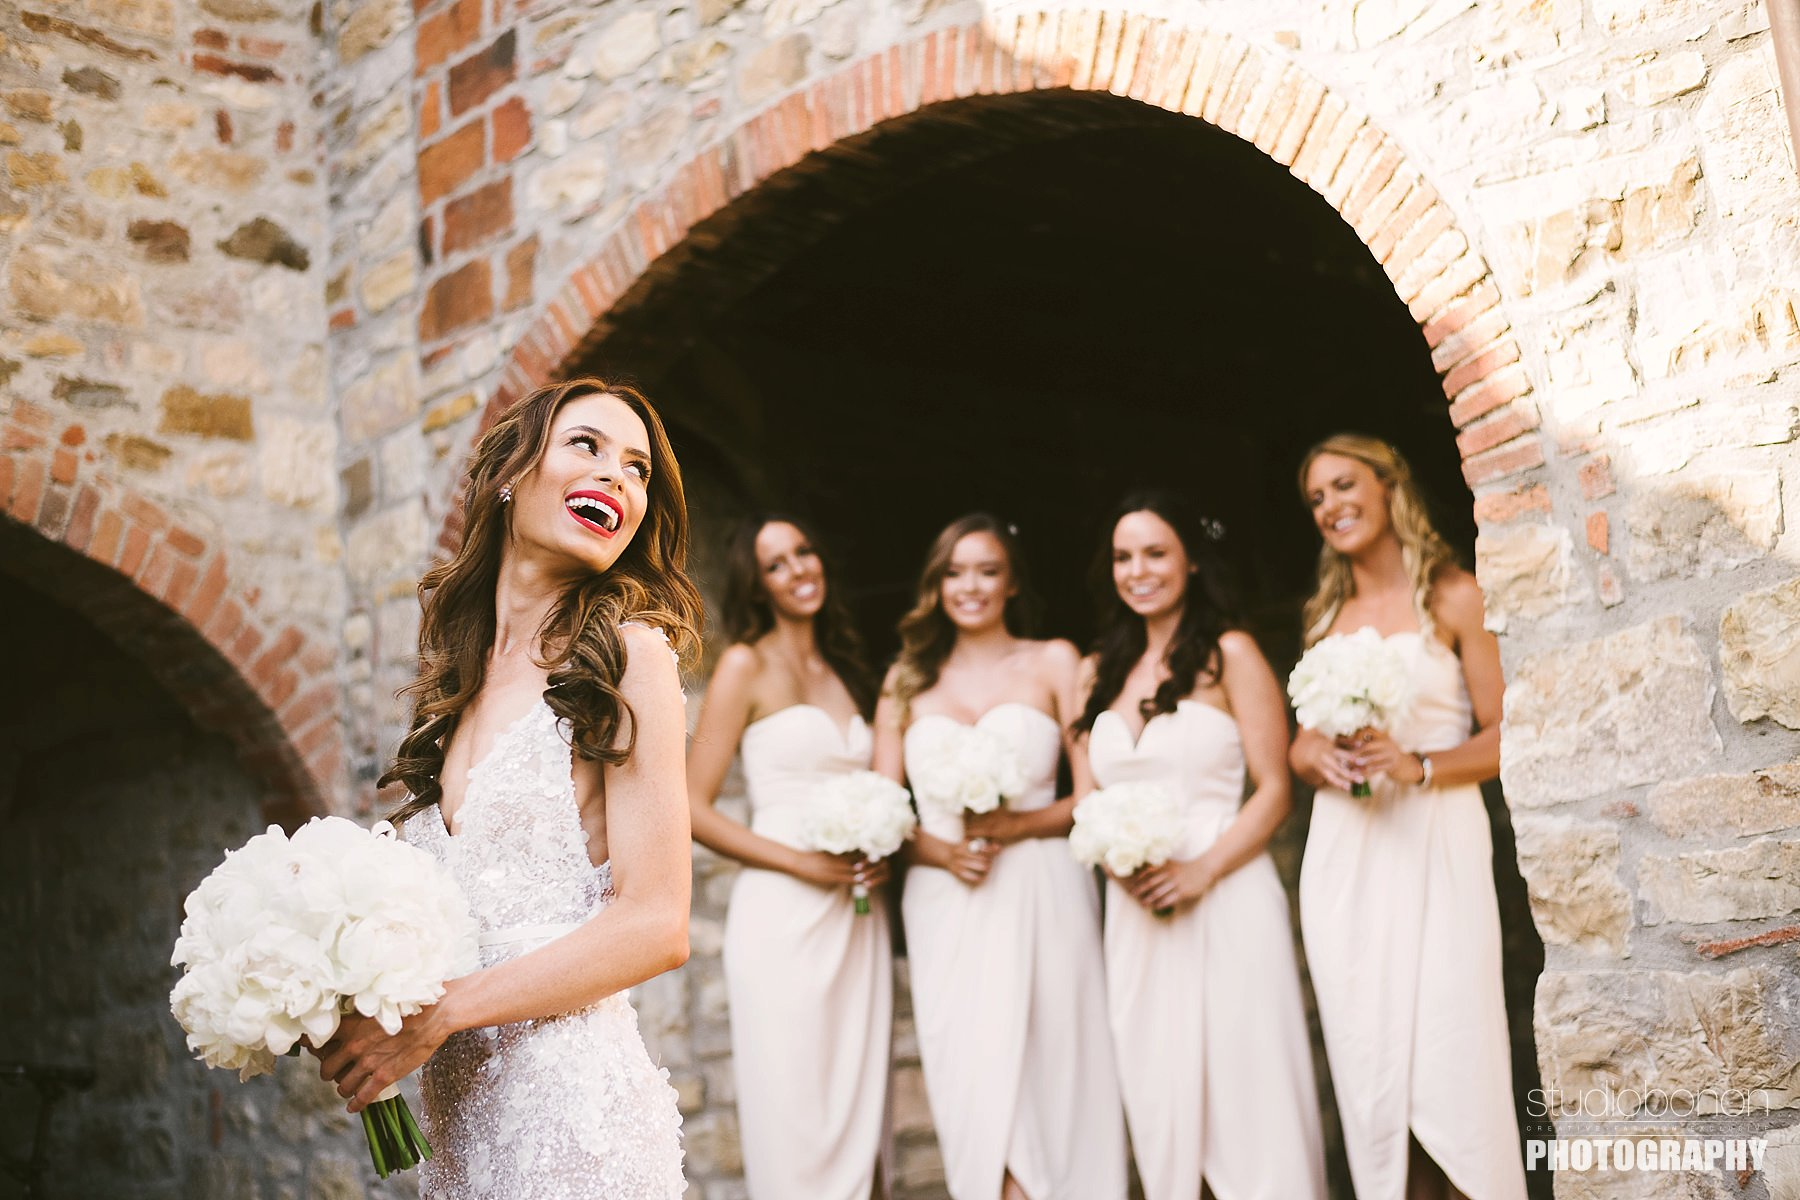 Bride with bridesmaids at Panzano in Chianti. Tuscany countryside destination wedding